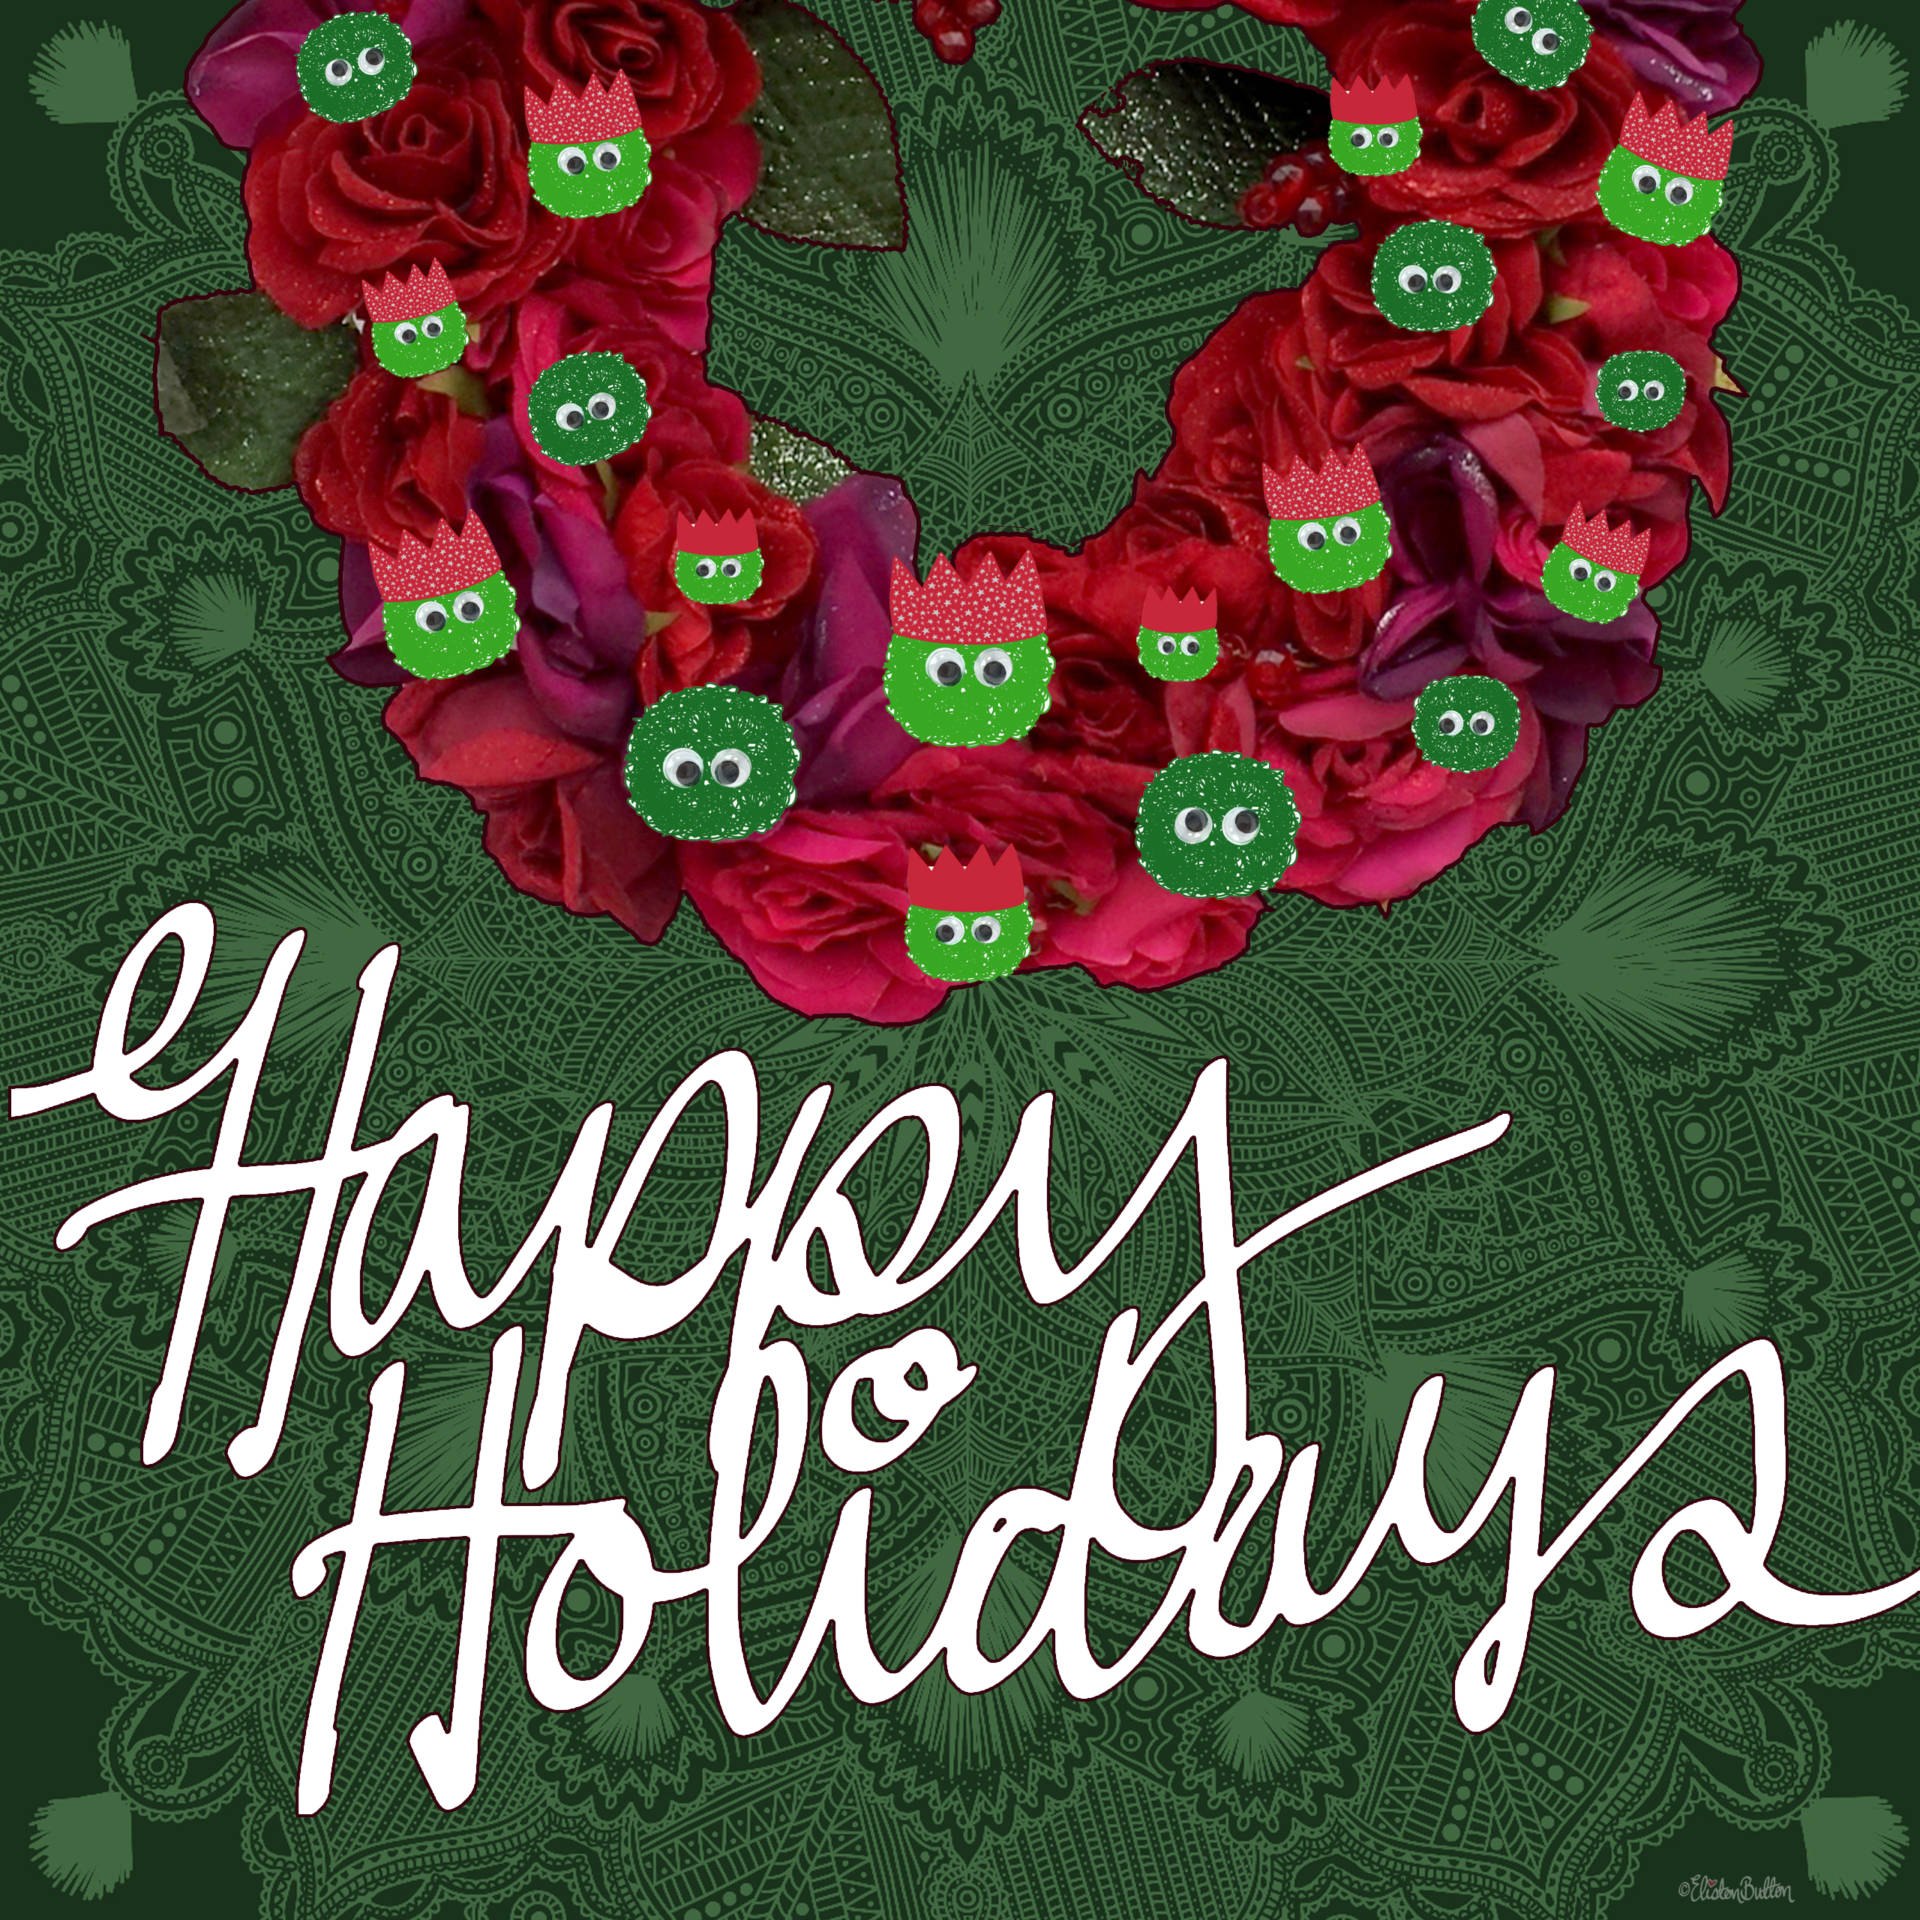 Happy Holidays Sprout Wreath by Eliston Button - Moments of Magic at www.elistonbutton.com - Eliston Button - A Treasure Trove of Creativity, Colour and Adventure.